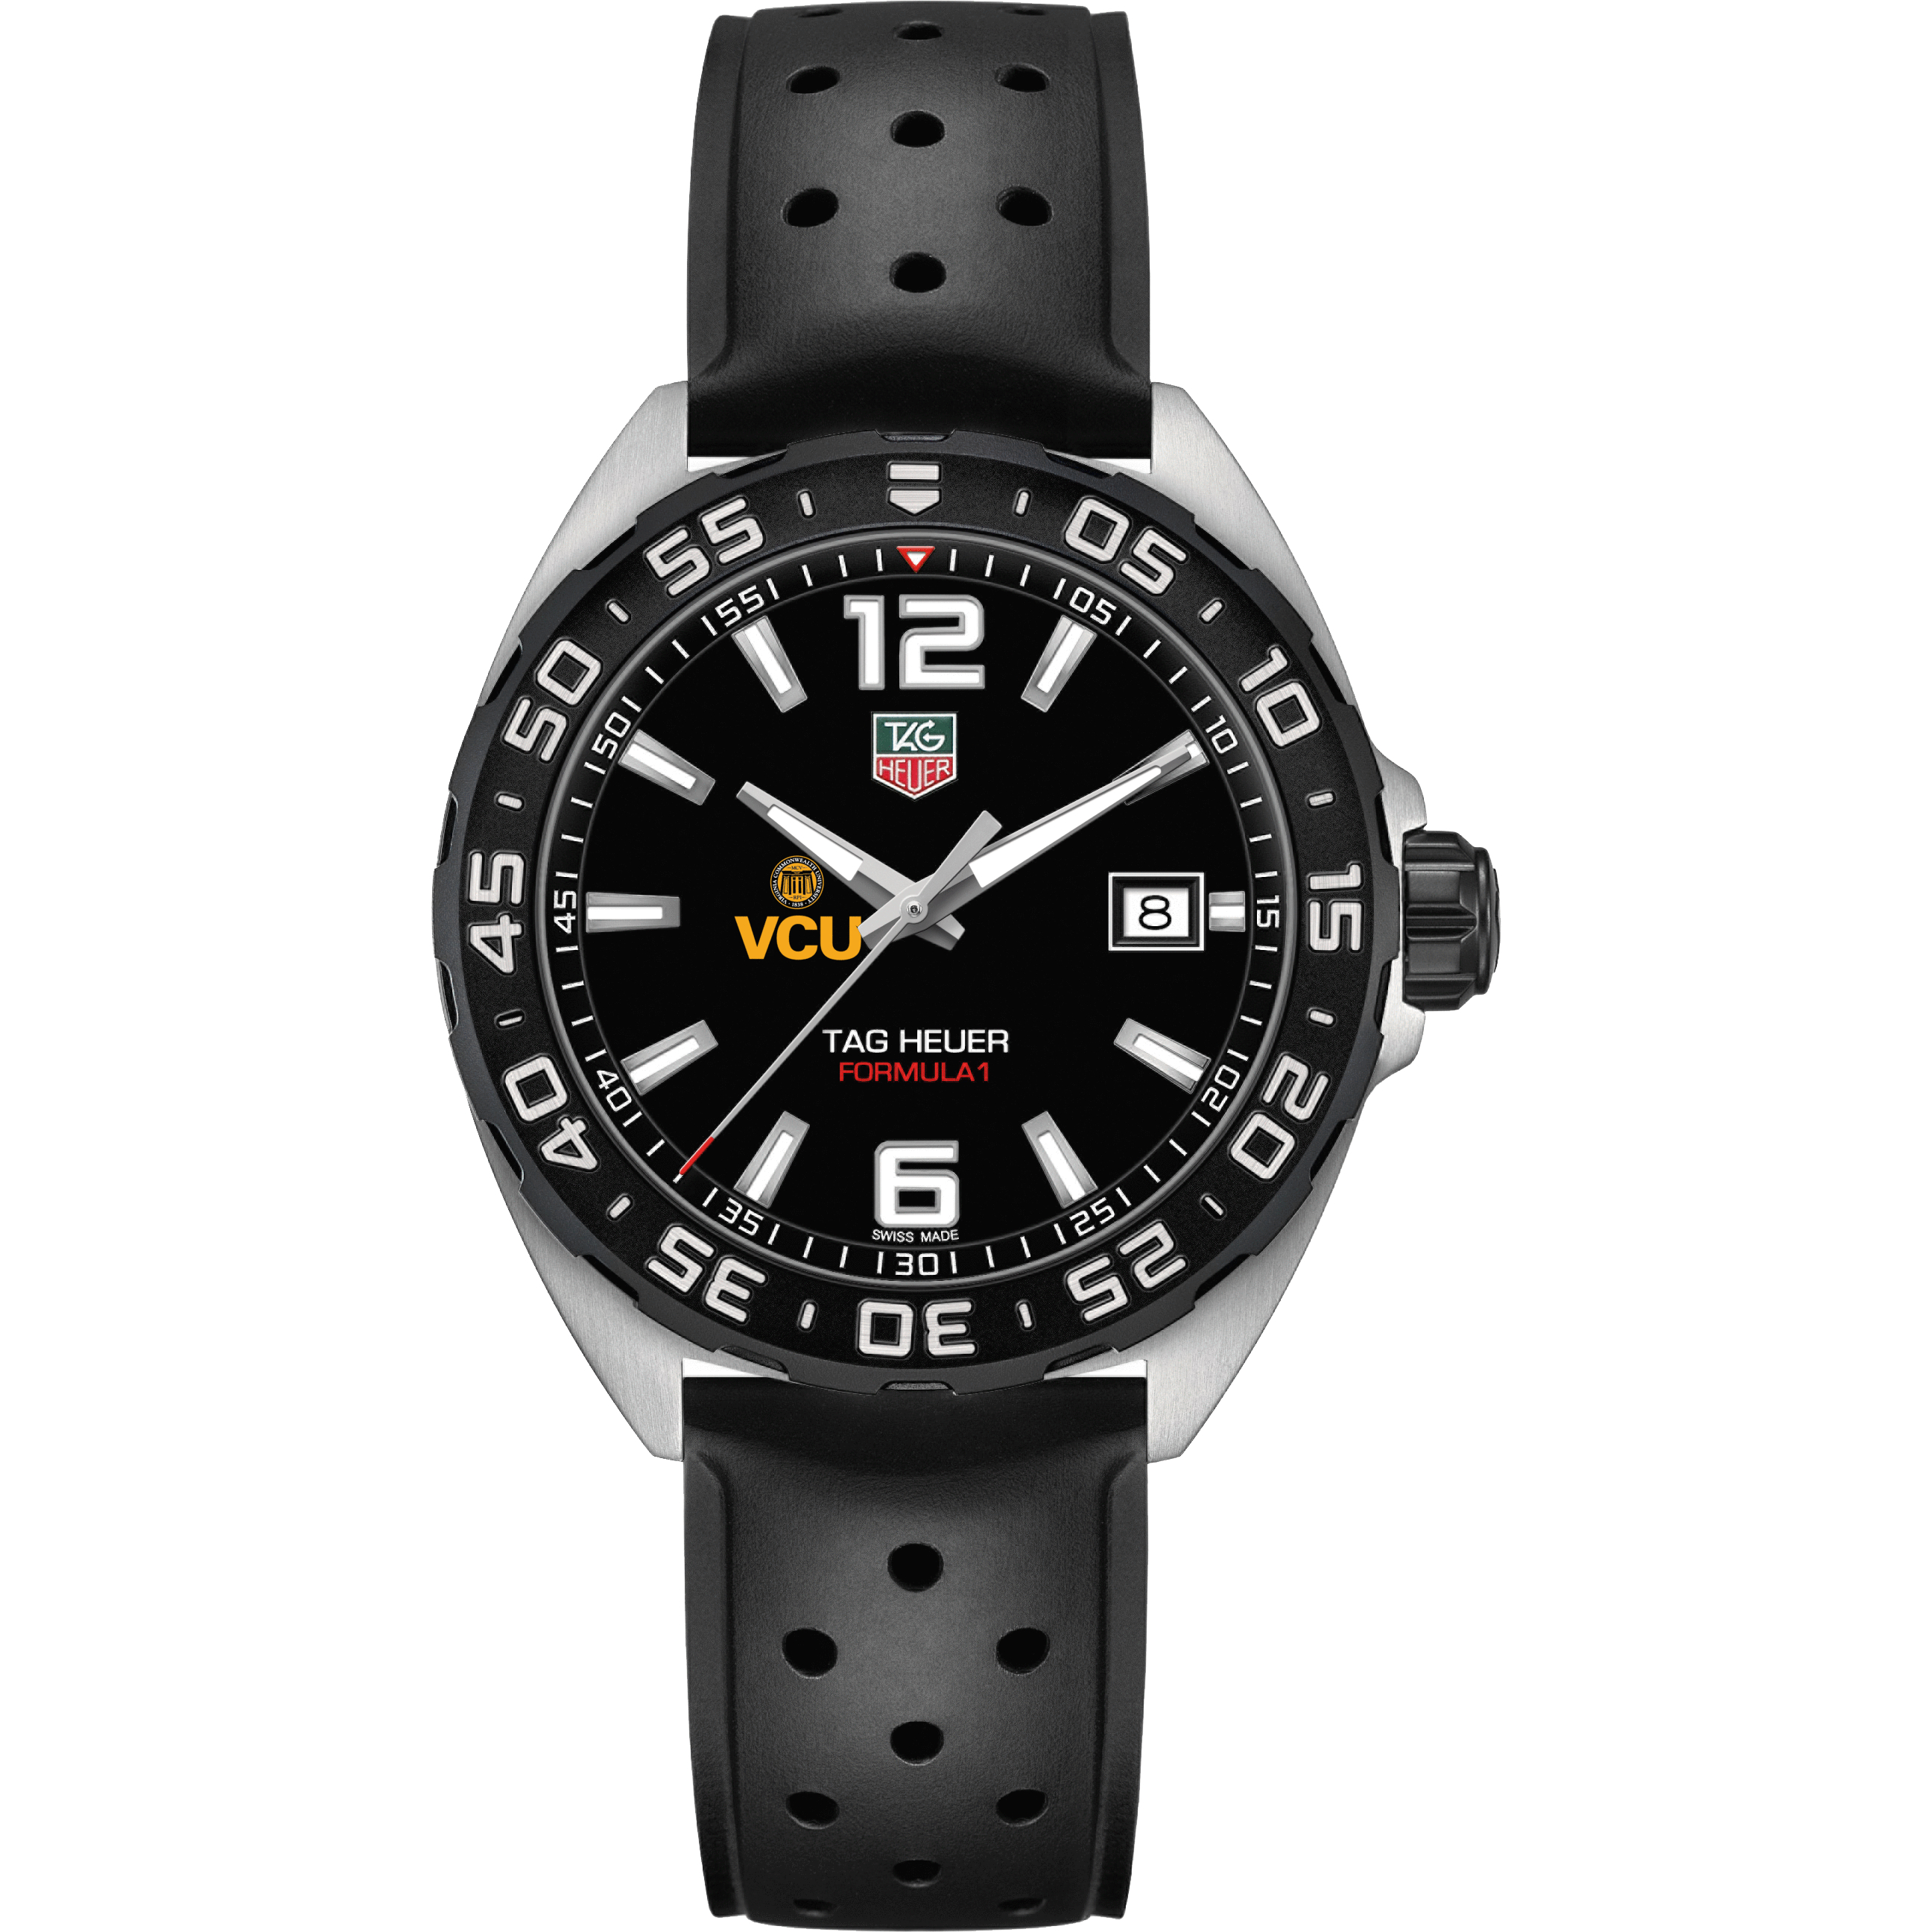 VCU Men's TAG Heuer Formula 1 with Black Dial - Image 2